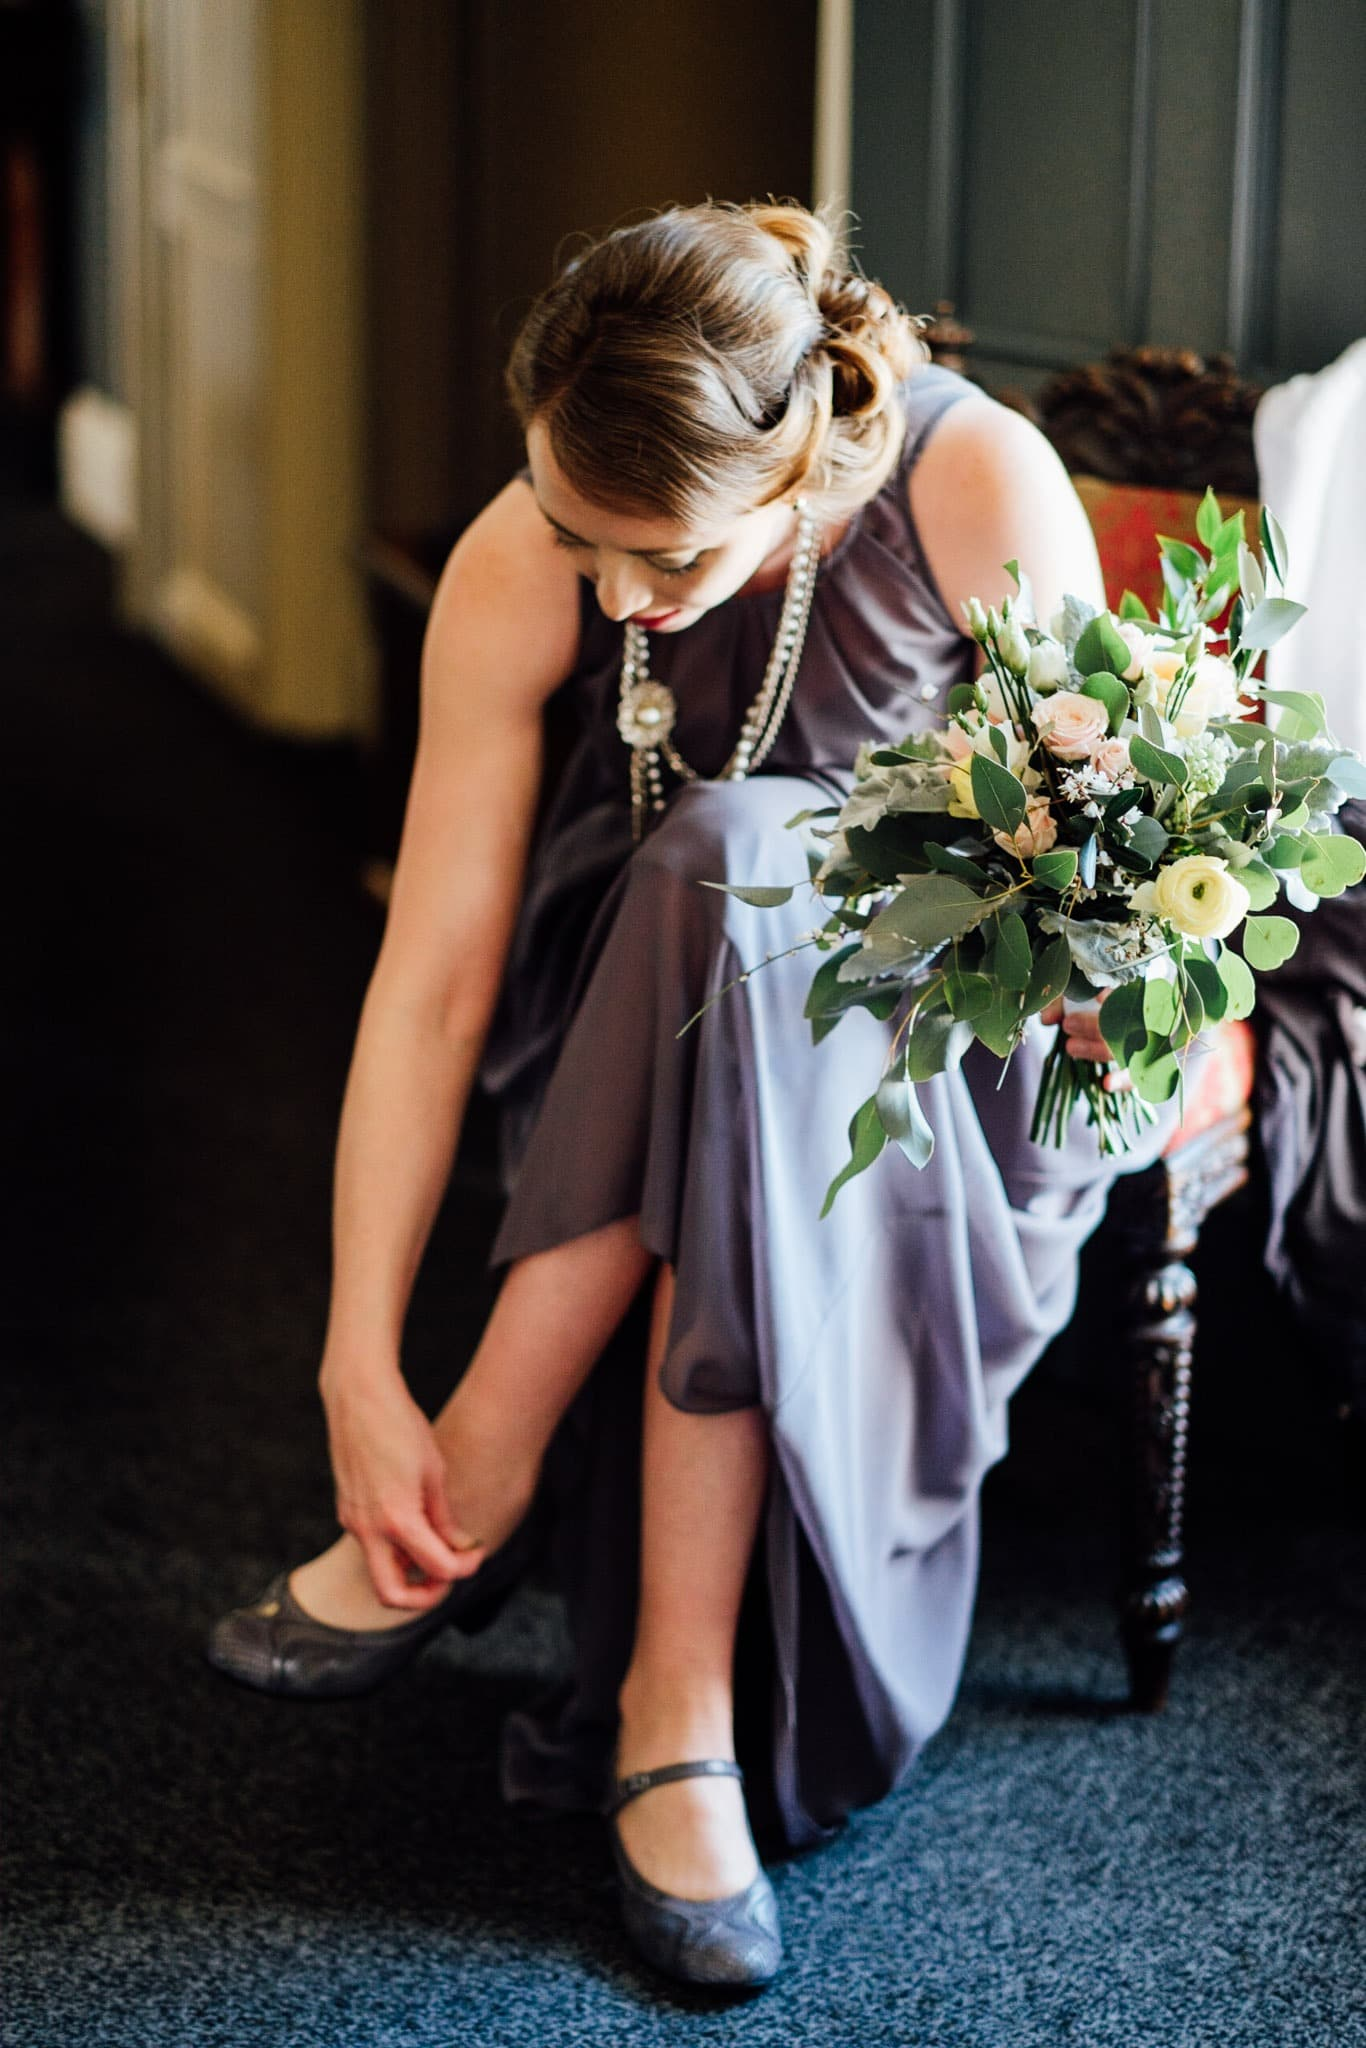 bridesmaid puts her shoes on